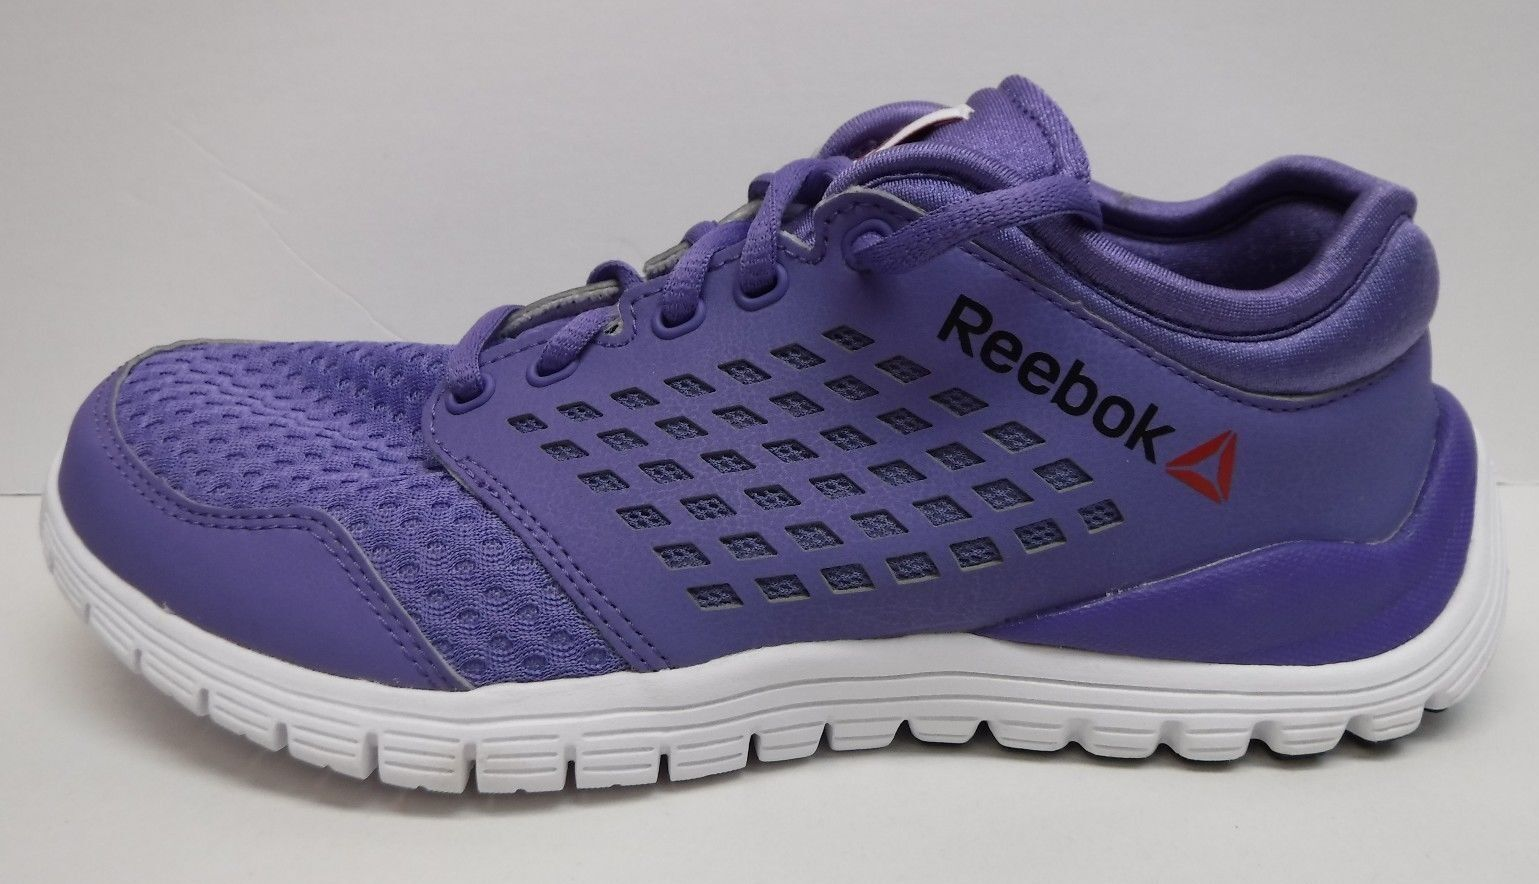 Reebok Taille 6.5  Walking baskets New femmes chaussures